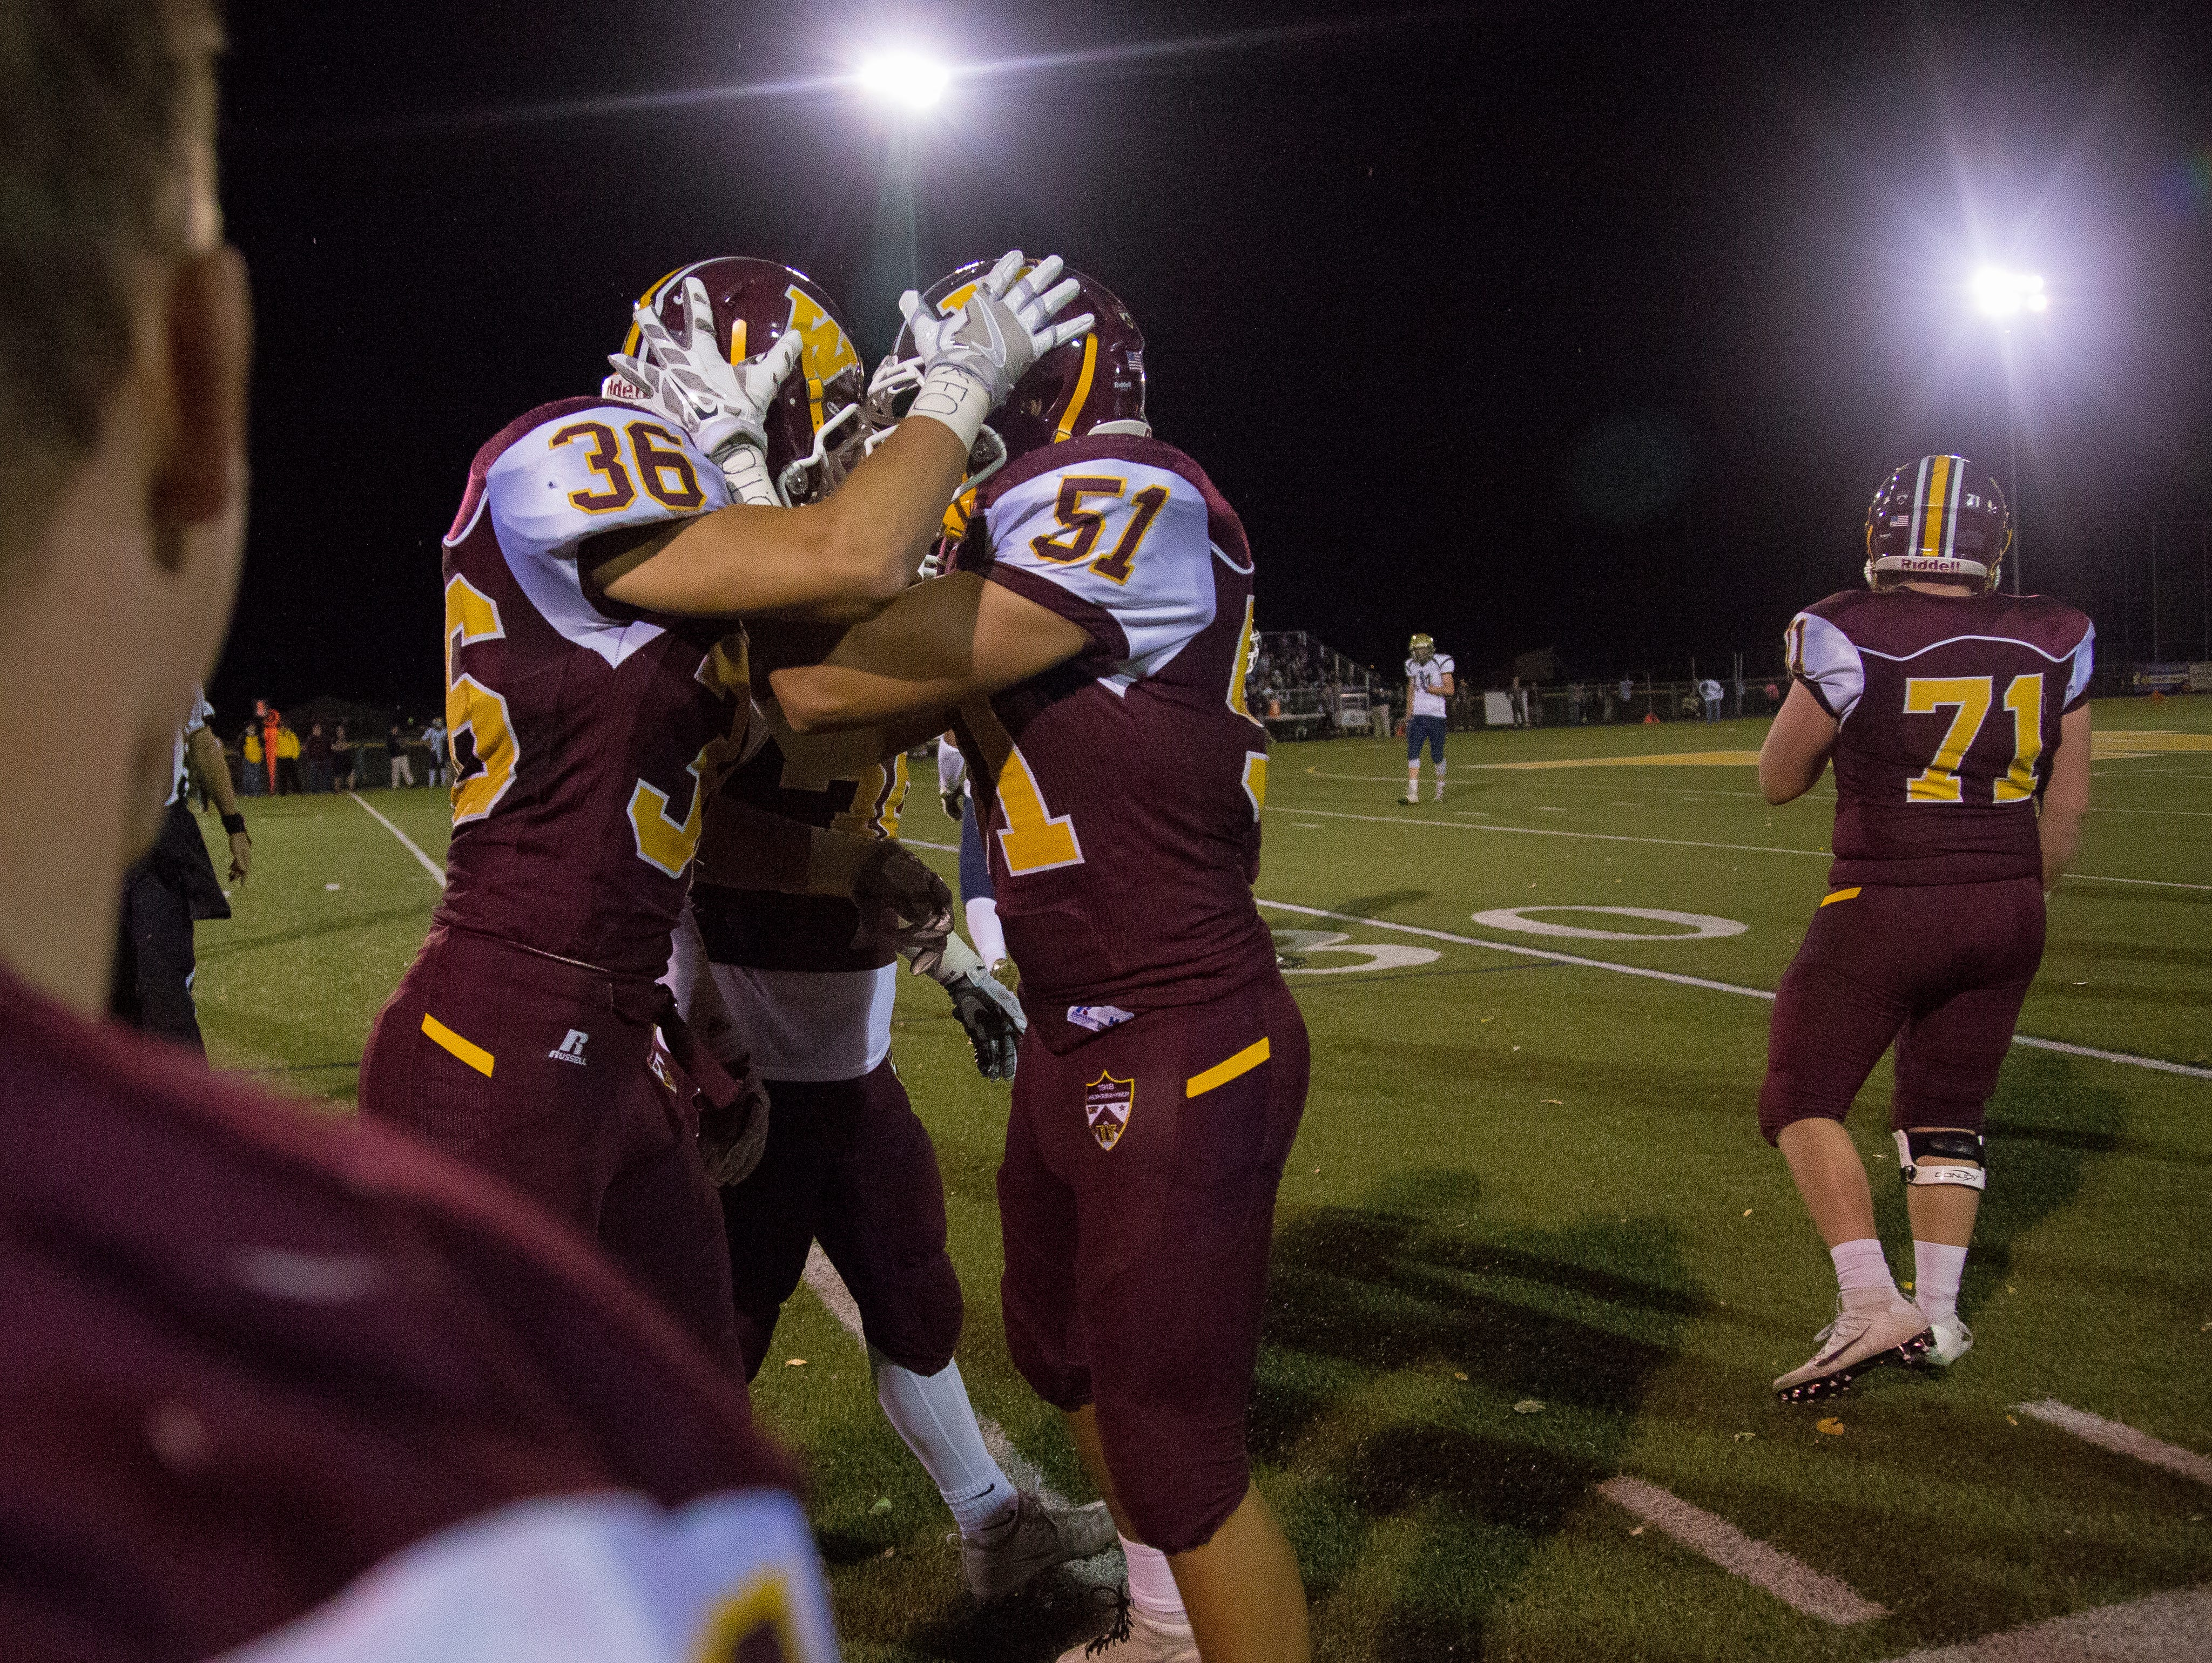 Windsor linebacker Jake Sorrentino, right, celebrates a touchdown with linebacker Joel Kopcow during the game against Greeley West Friday, September 23, 2016.